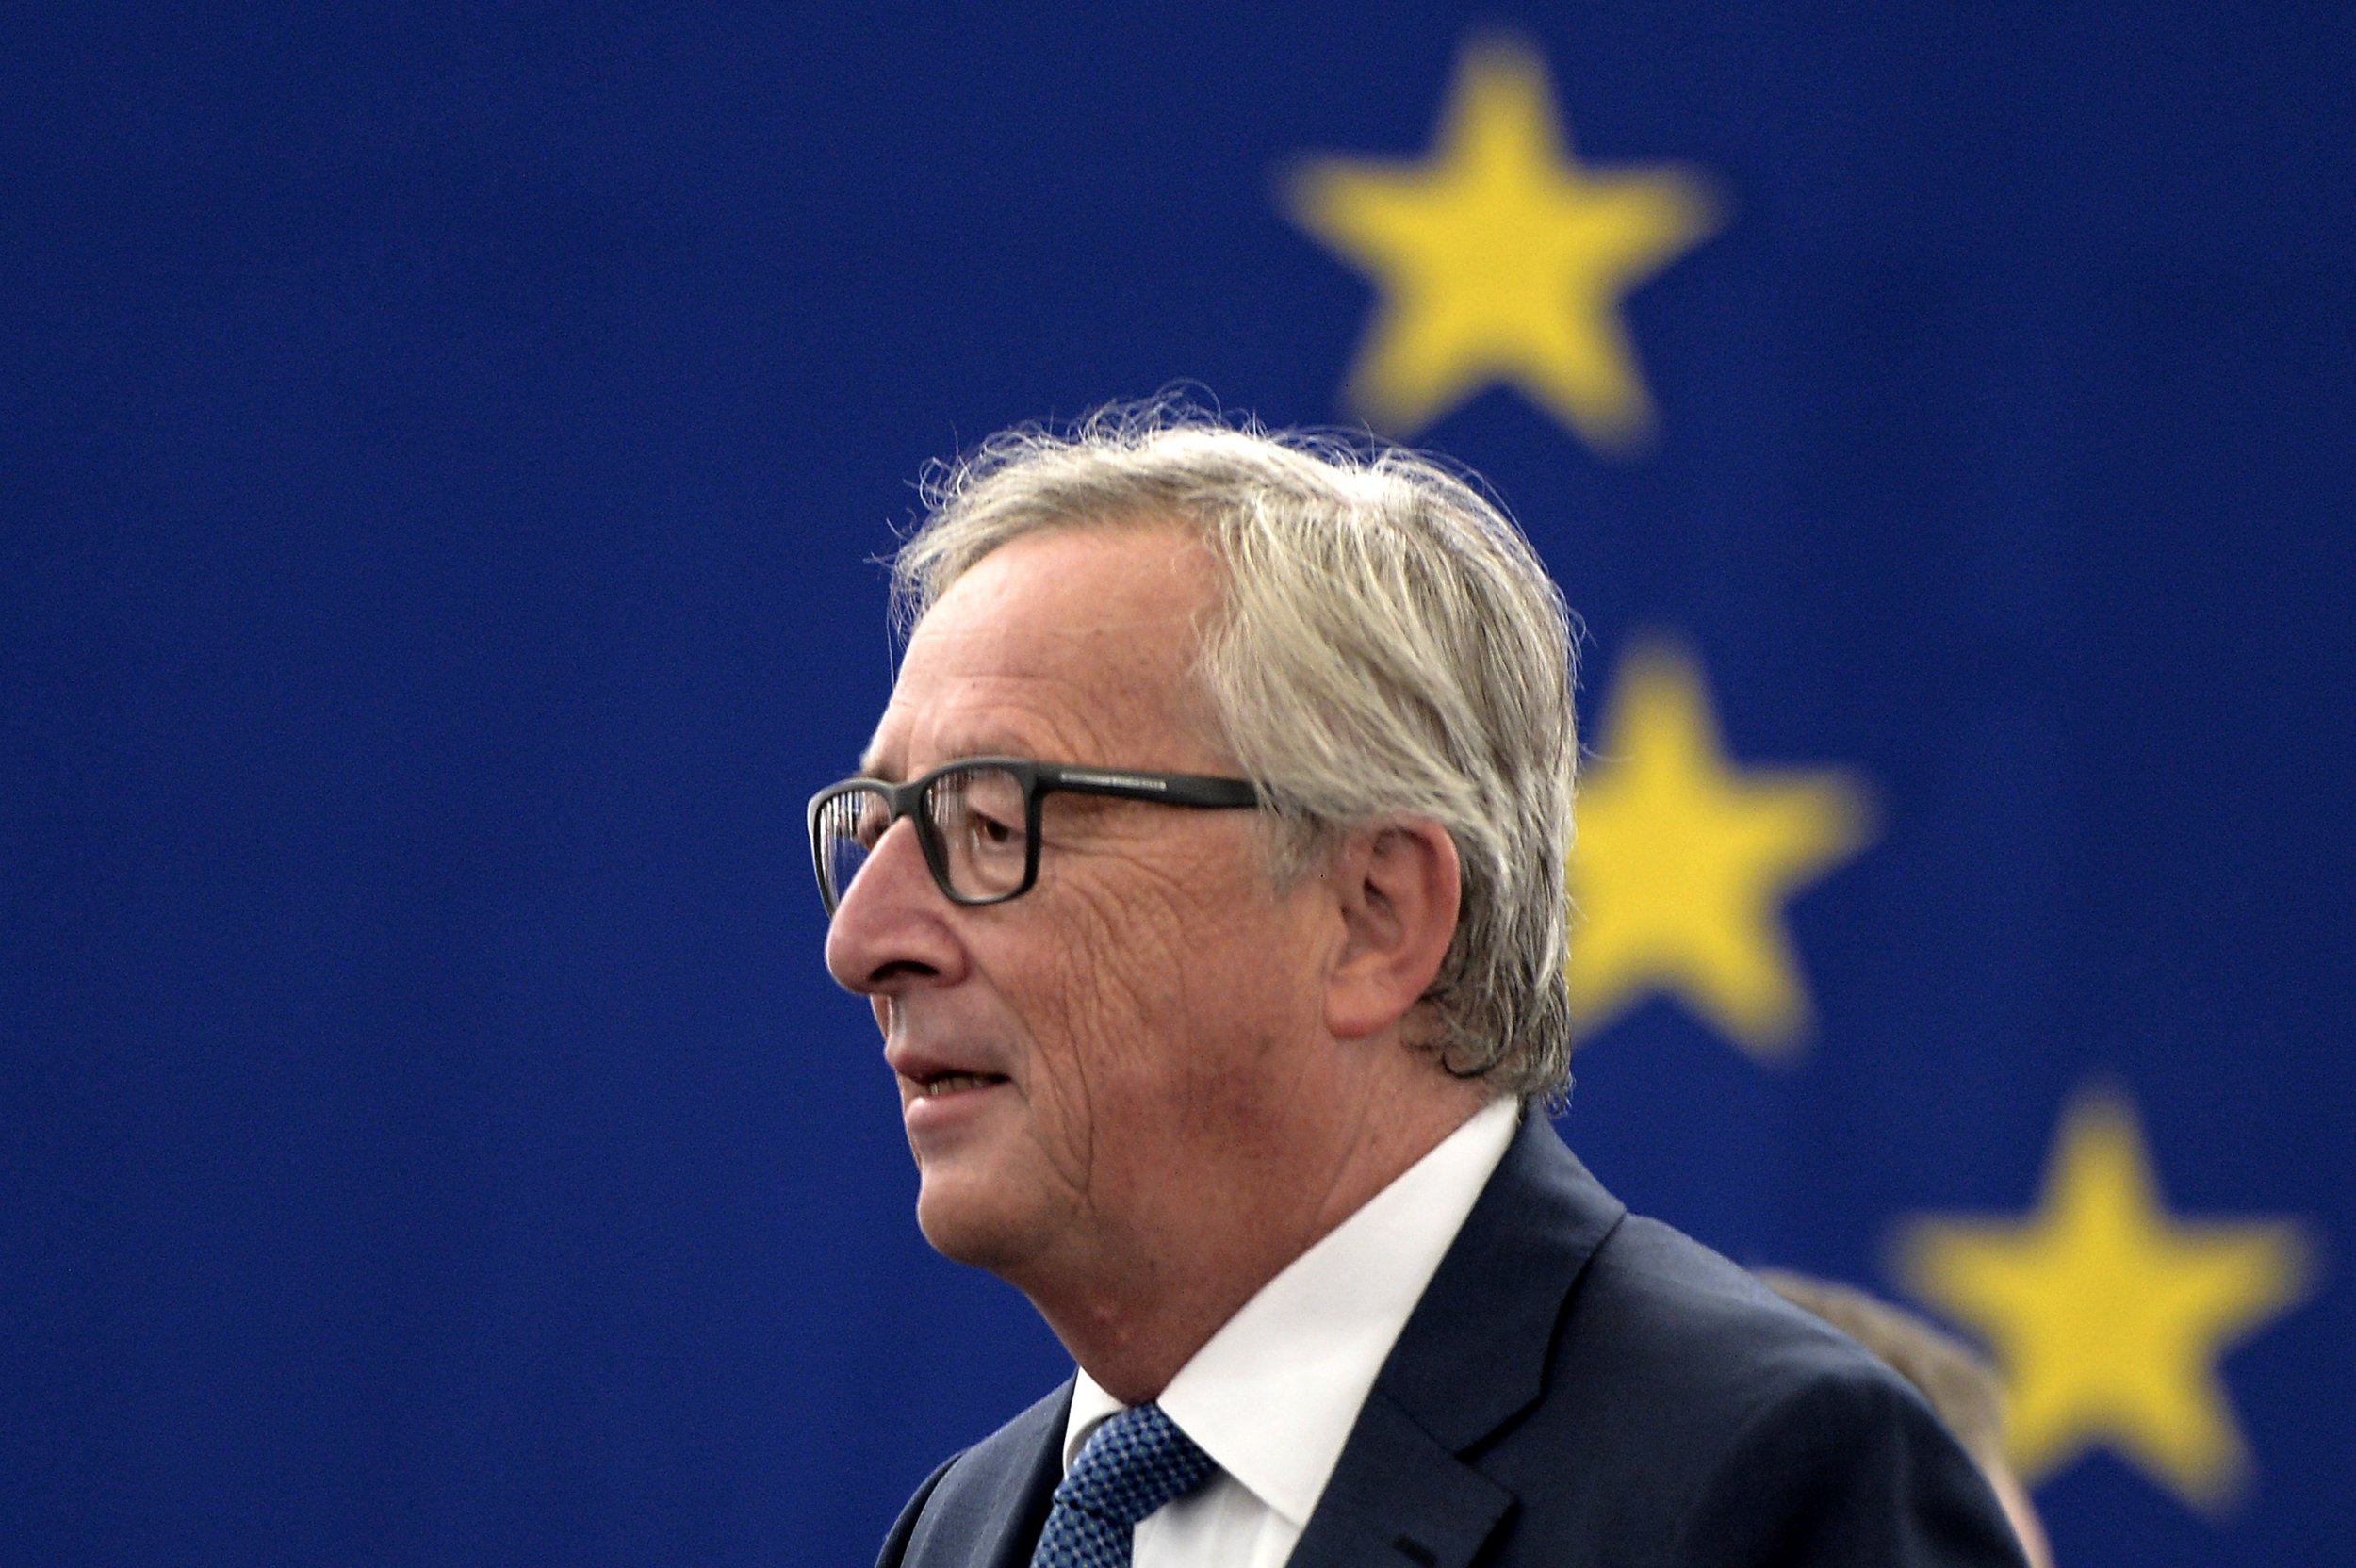 Theresa May heads to Brussels to chalk out post-Brexit plan with Juncker